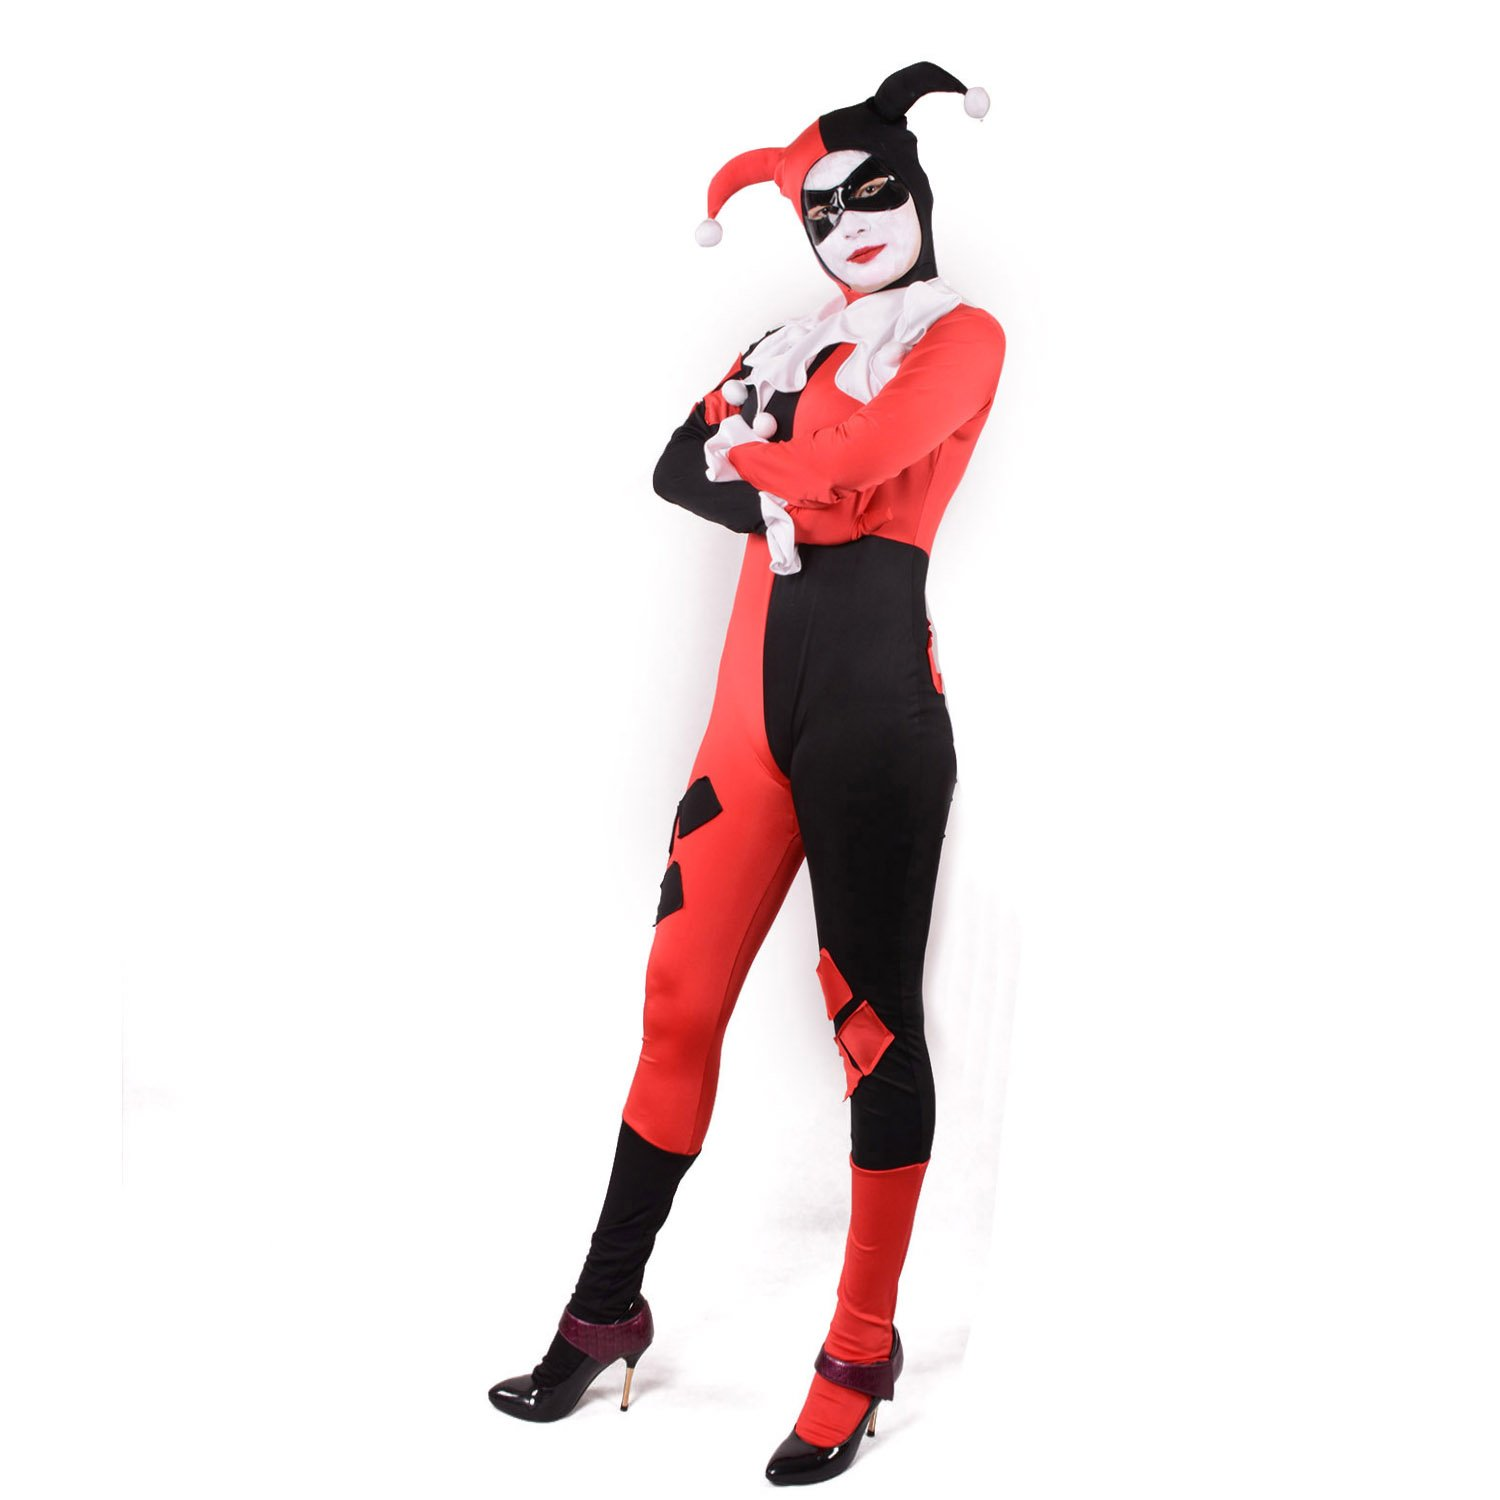 sc 1 st  Amazon.com & Amazon.com: Harley Quinn Costume Bodysuit Catsuit (Large Red): Clothing